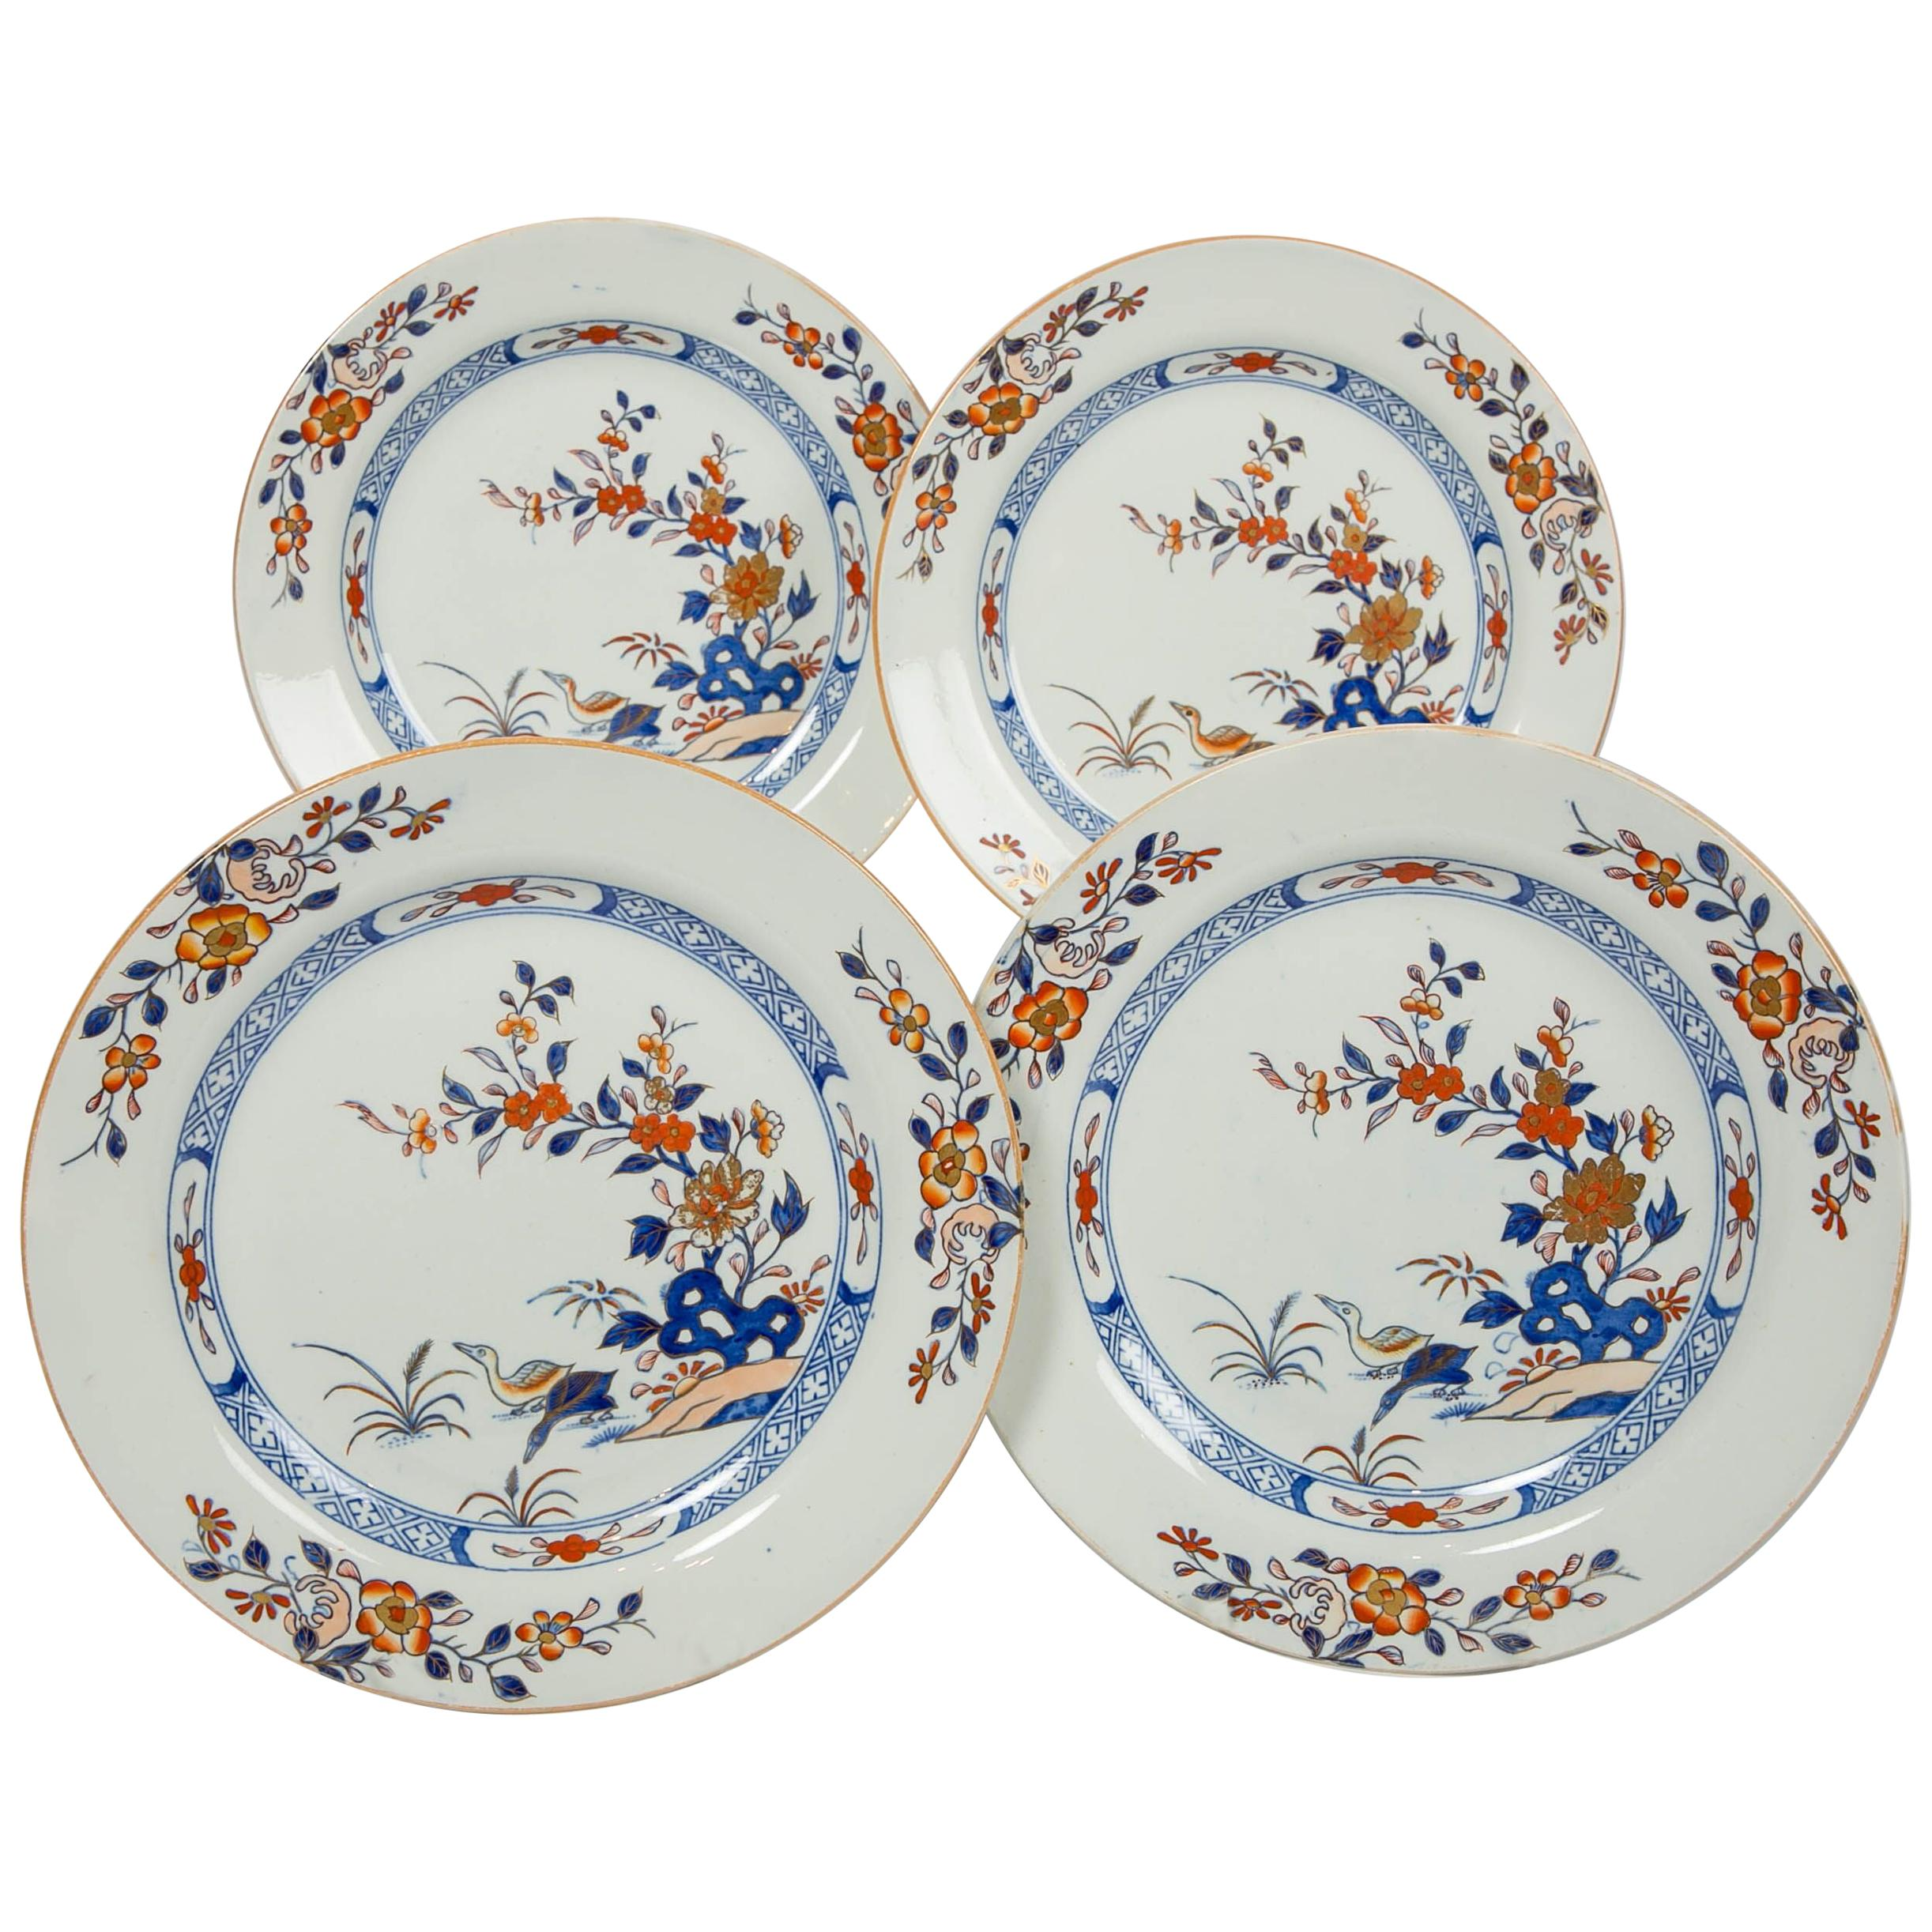 Set of Four Wedgwood Dessert Dishes Showing a Pair of Ducks Made England c-1820